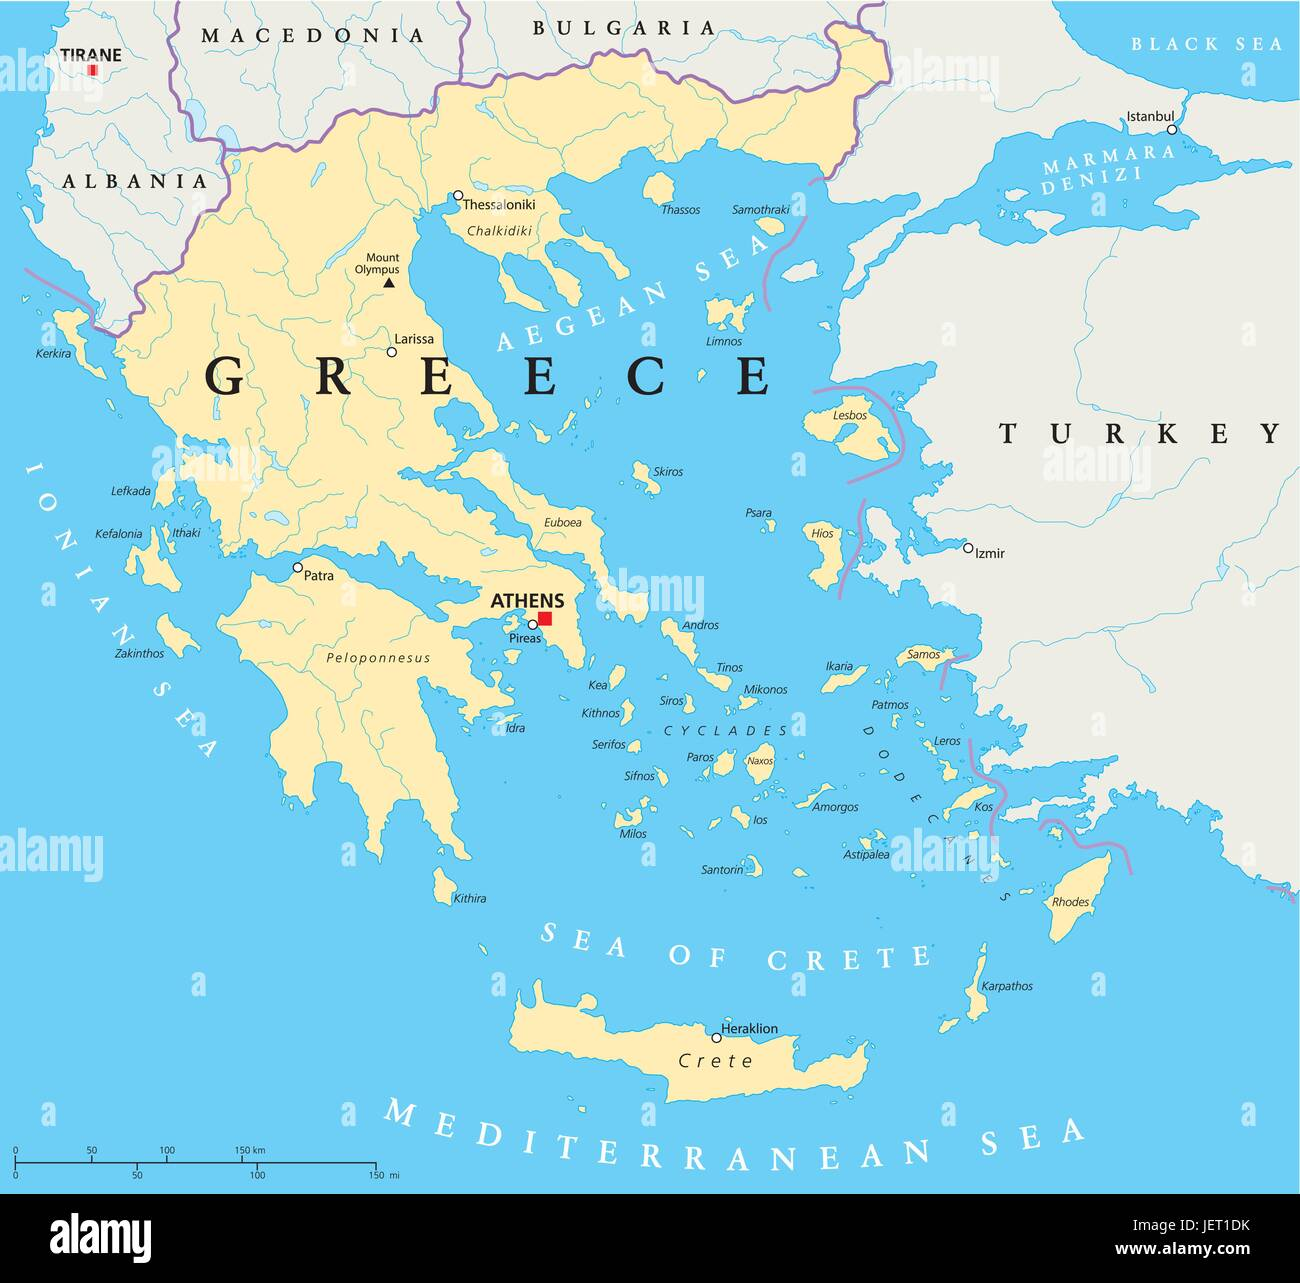 Political greece greek athens map atlas map of the world stock political greece greek athens map atlas map of the world political gumiabroncs Gallery